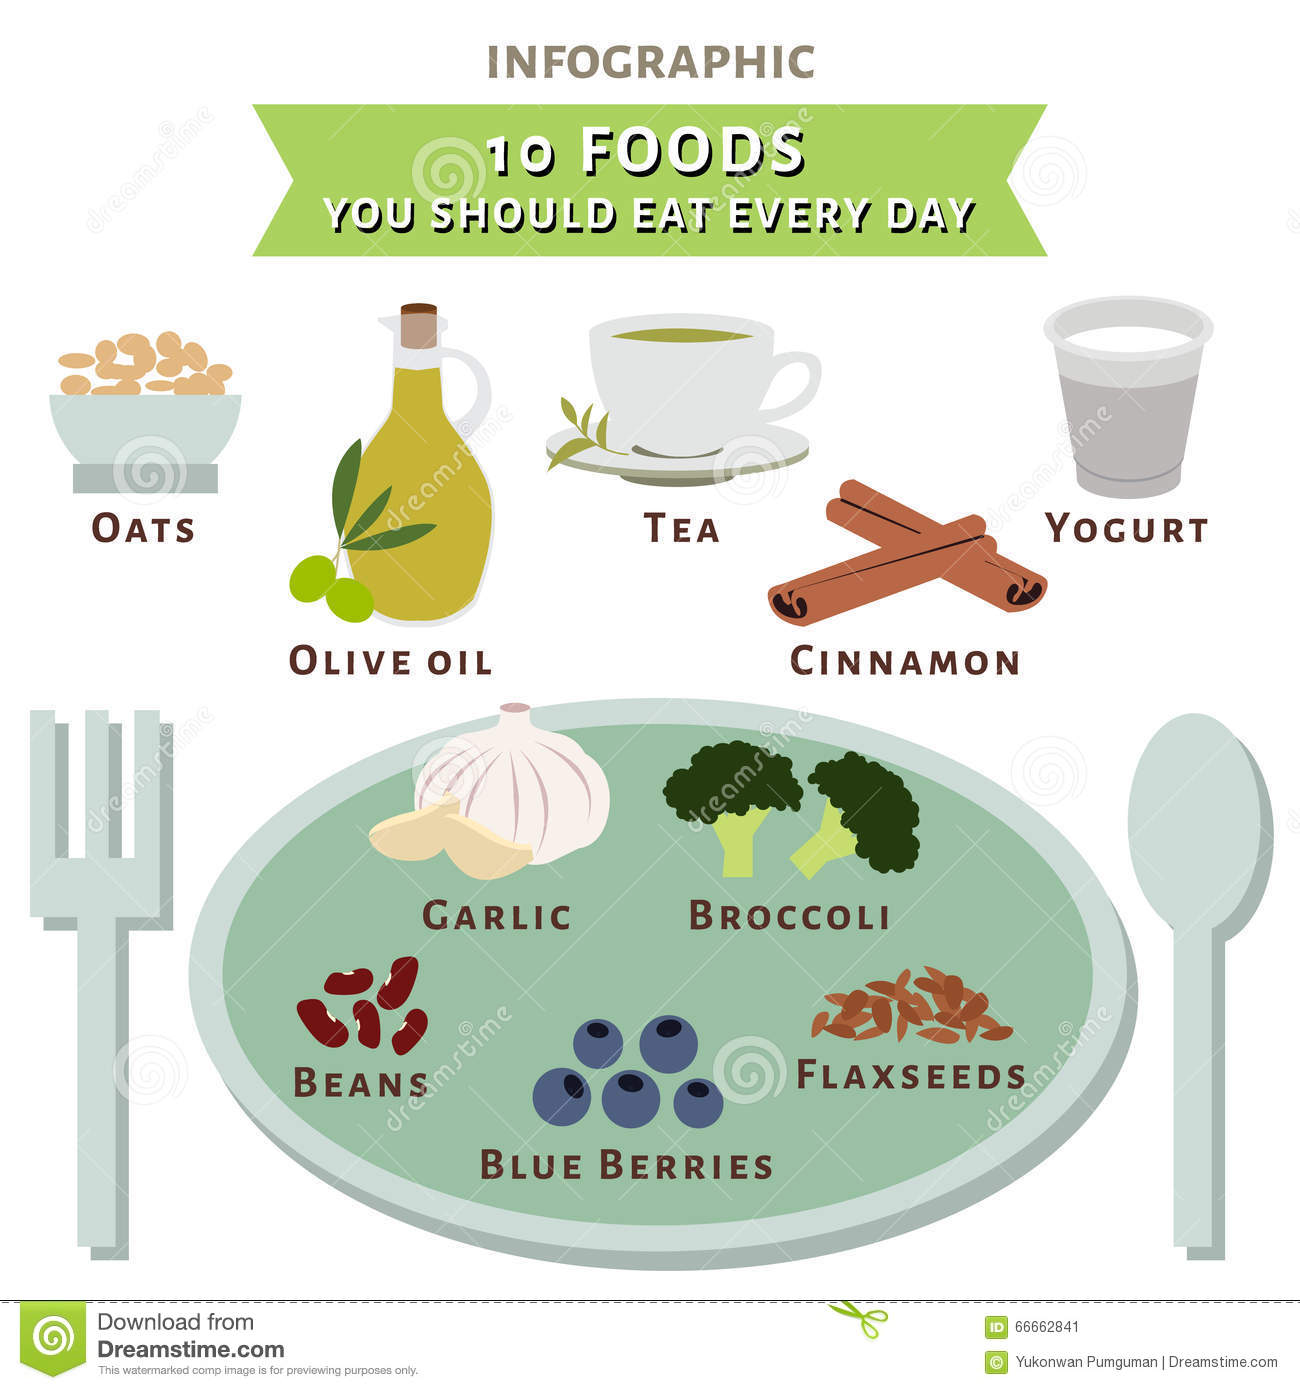 Foods You Can Eat Every Day to Lose Weight Foods You Can Eat Every Day to Lose Weight new images